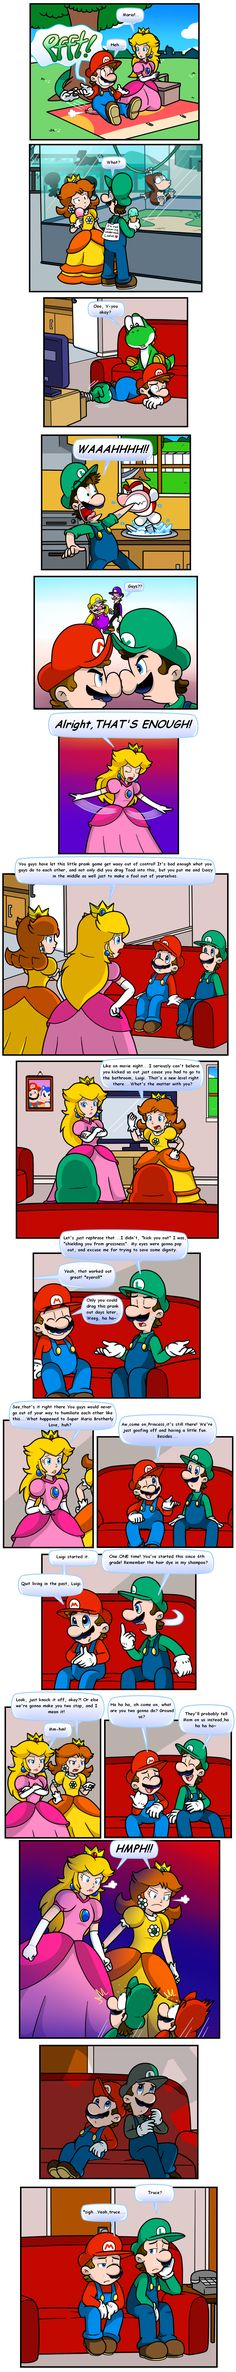 Pranksters 2: Page 7 by Nintendrawer on DeviantArt